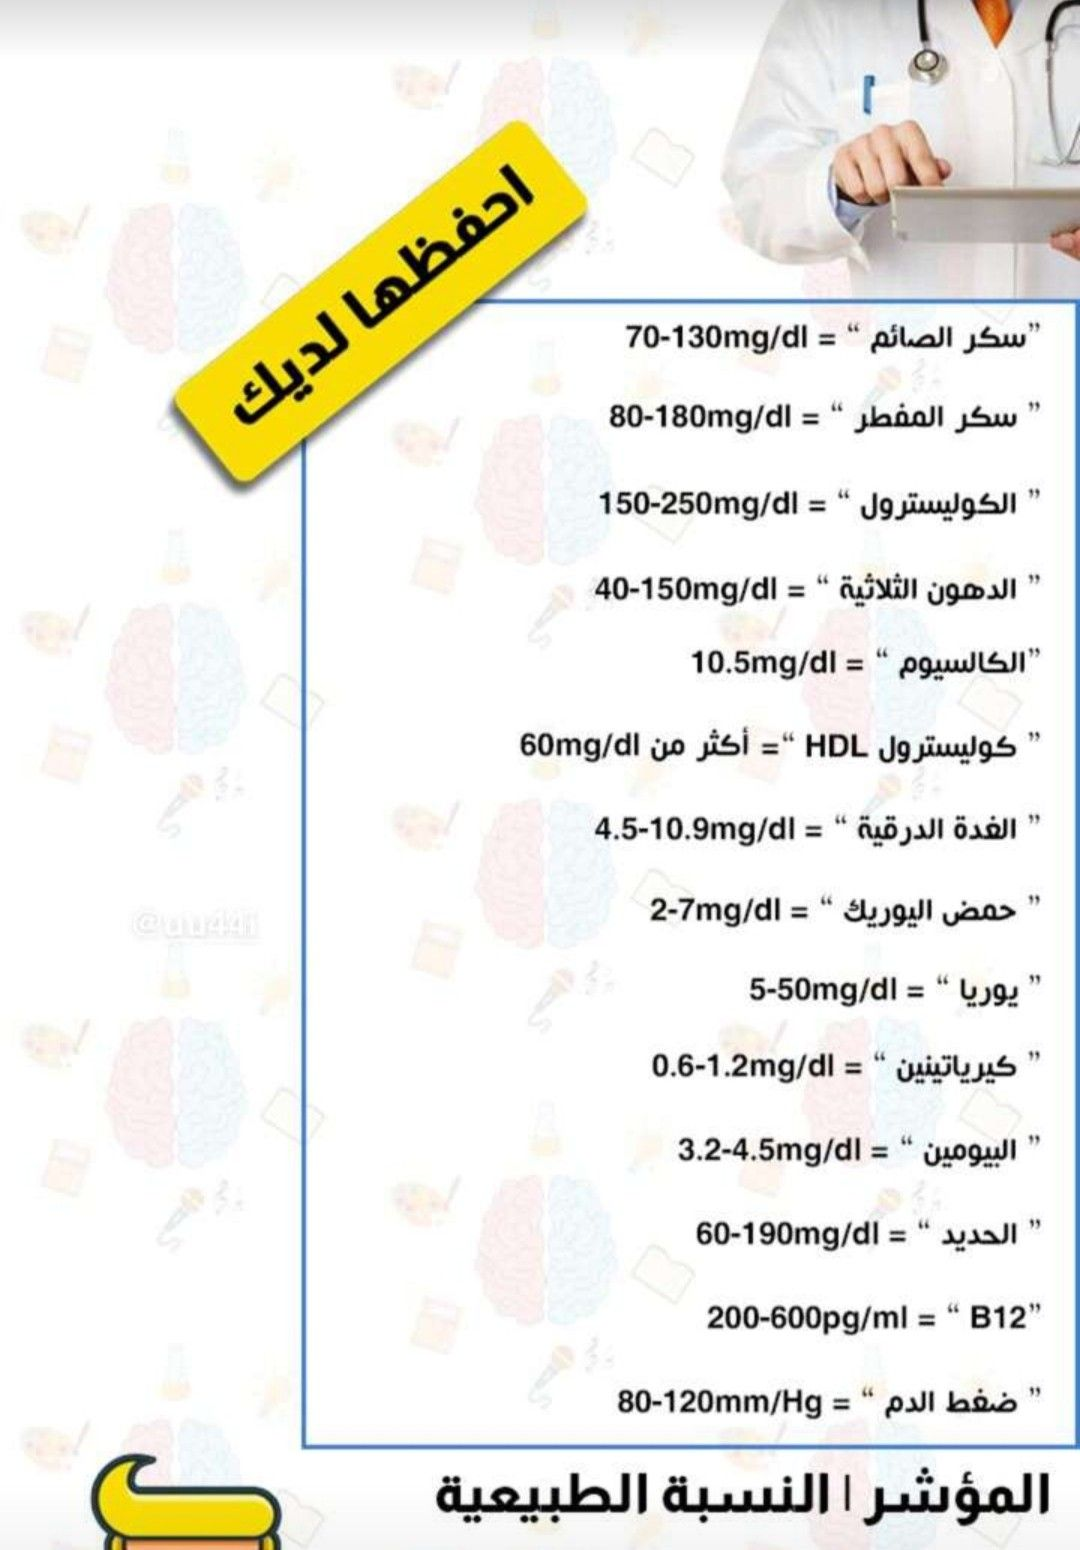 Pin By Mohammed Al Harbi On صحتي Beauty Skin Care Routine Health Facts Food Body Health